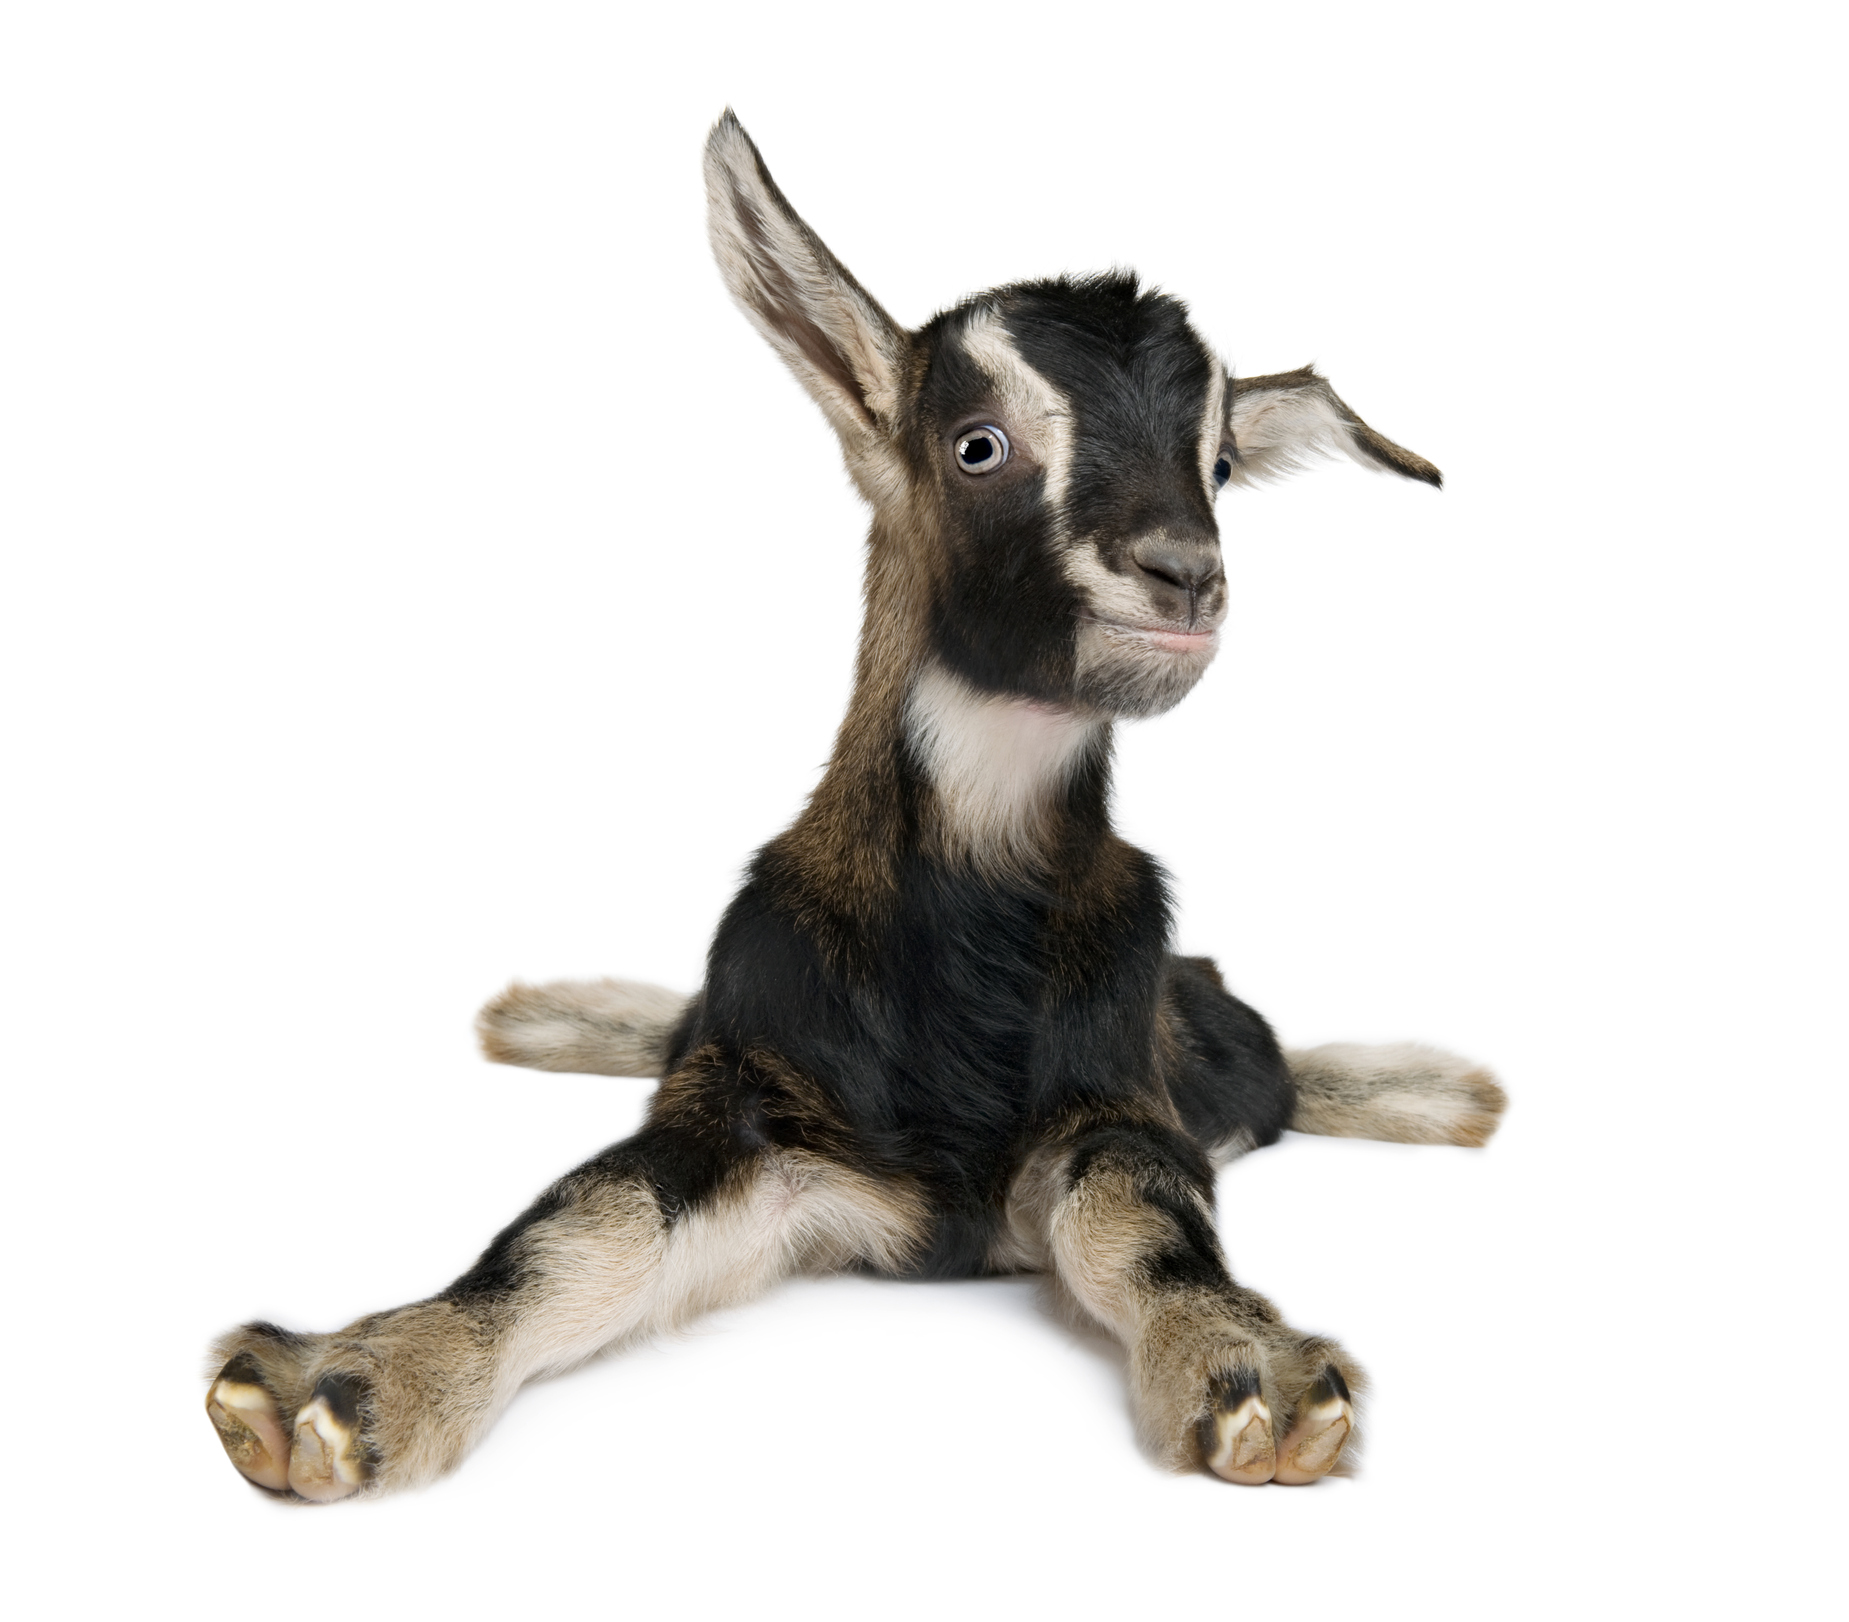 ai - take up the right amount of spacegenki-ya2020 20/20B.O.S.S.semicoloncalming goatsrefusing to fightCIVIL disobediencefinding a use for EVERYONEfainting goatsmai.dream: raise fainting goats to promote diabetes awareness and inclusion using dialectical behavior therapy